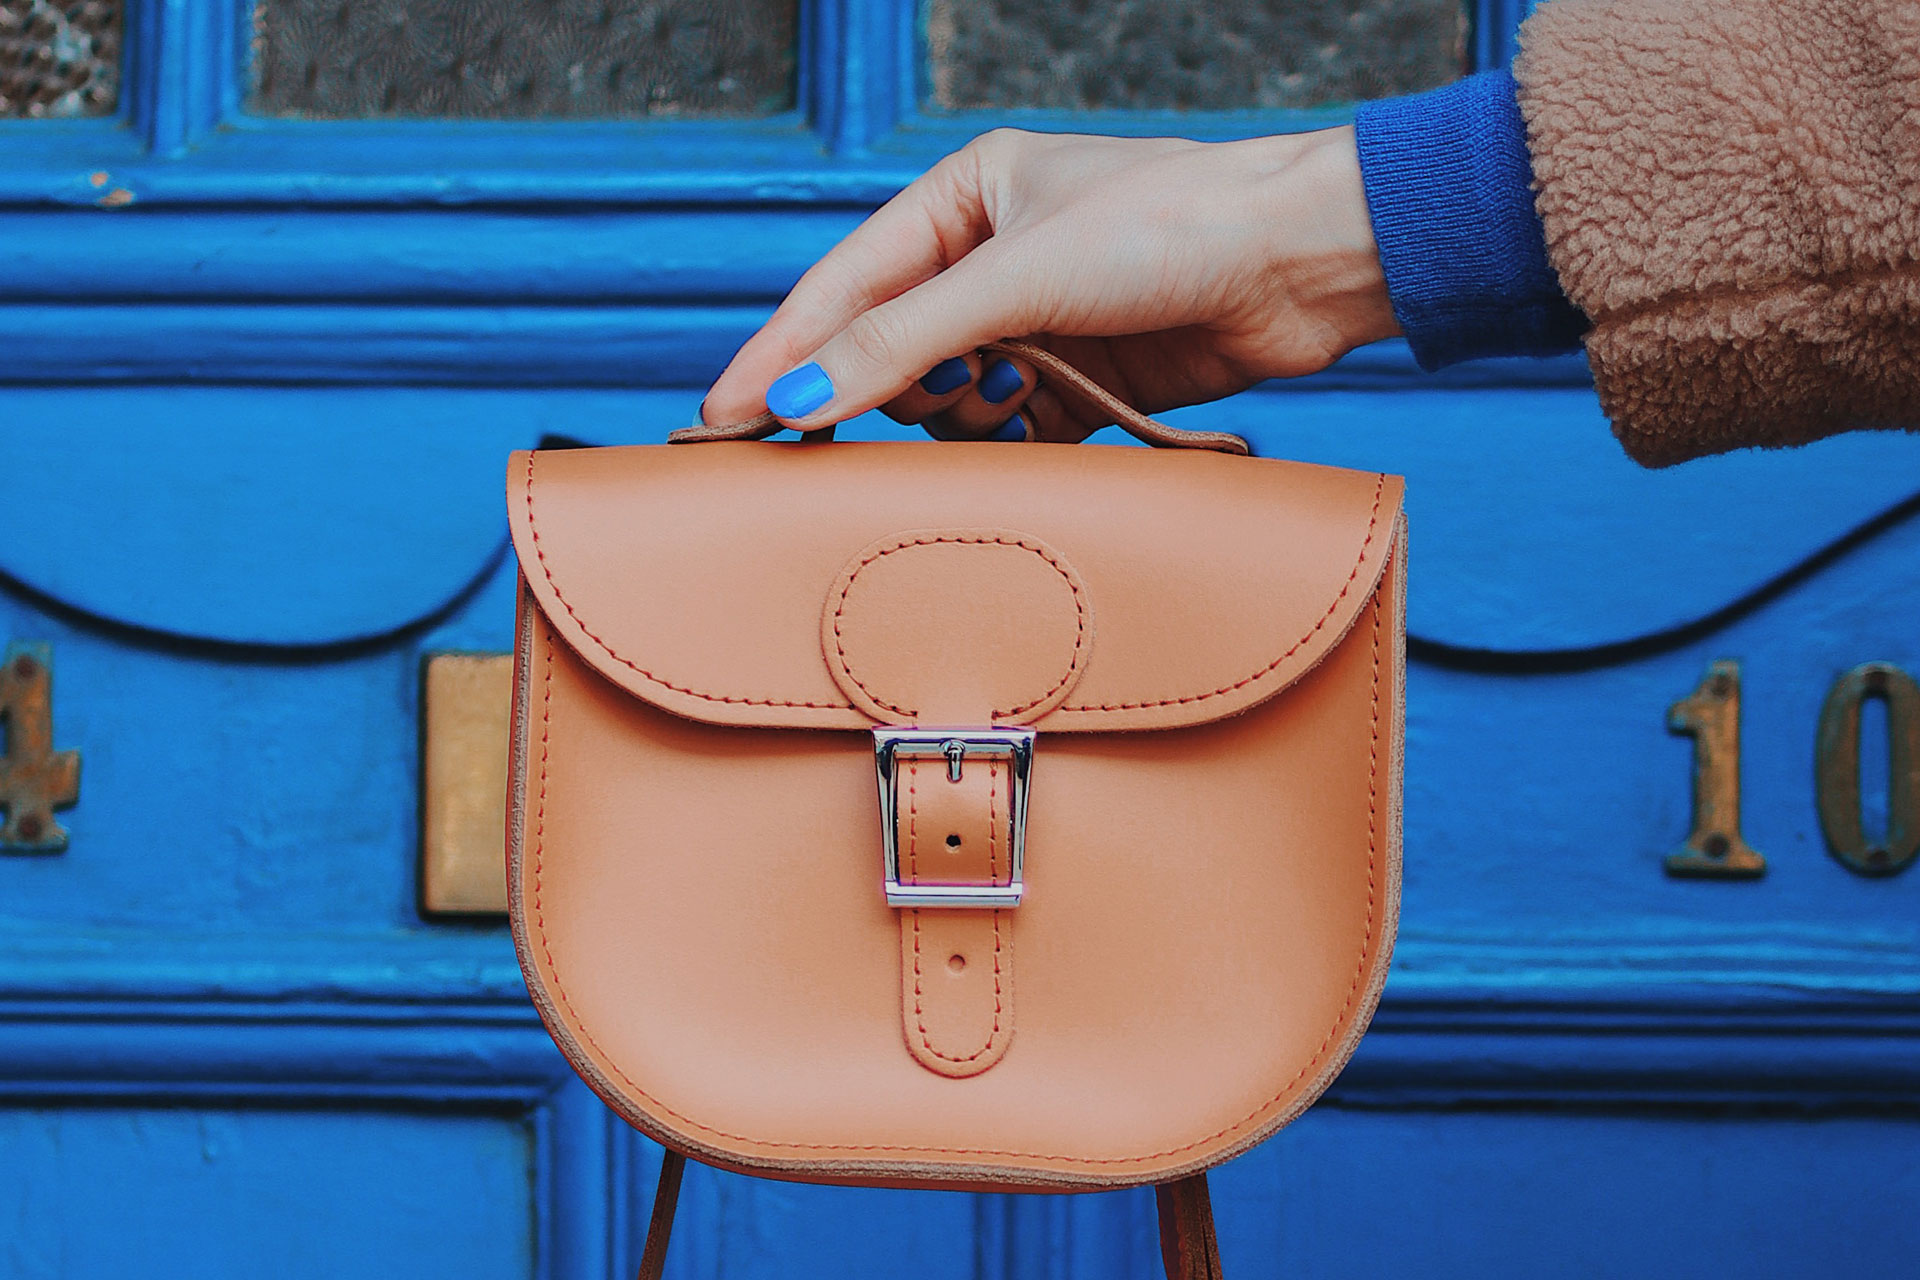 HALF PINT SMALL SATCHEL BAG £75.00, £82.50 Personalised FREE BAG CHARM!